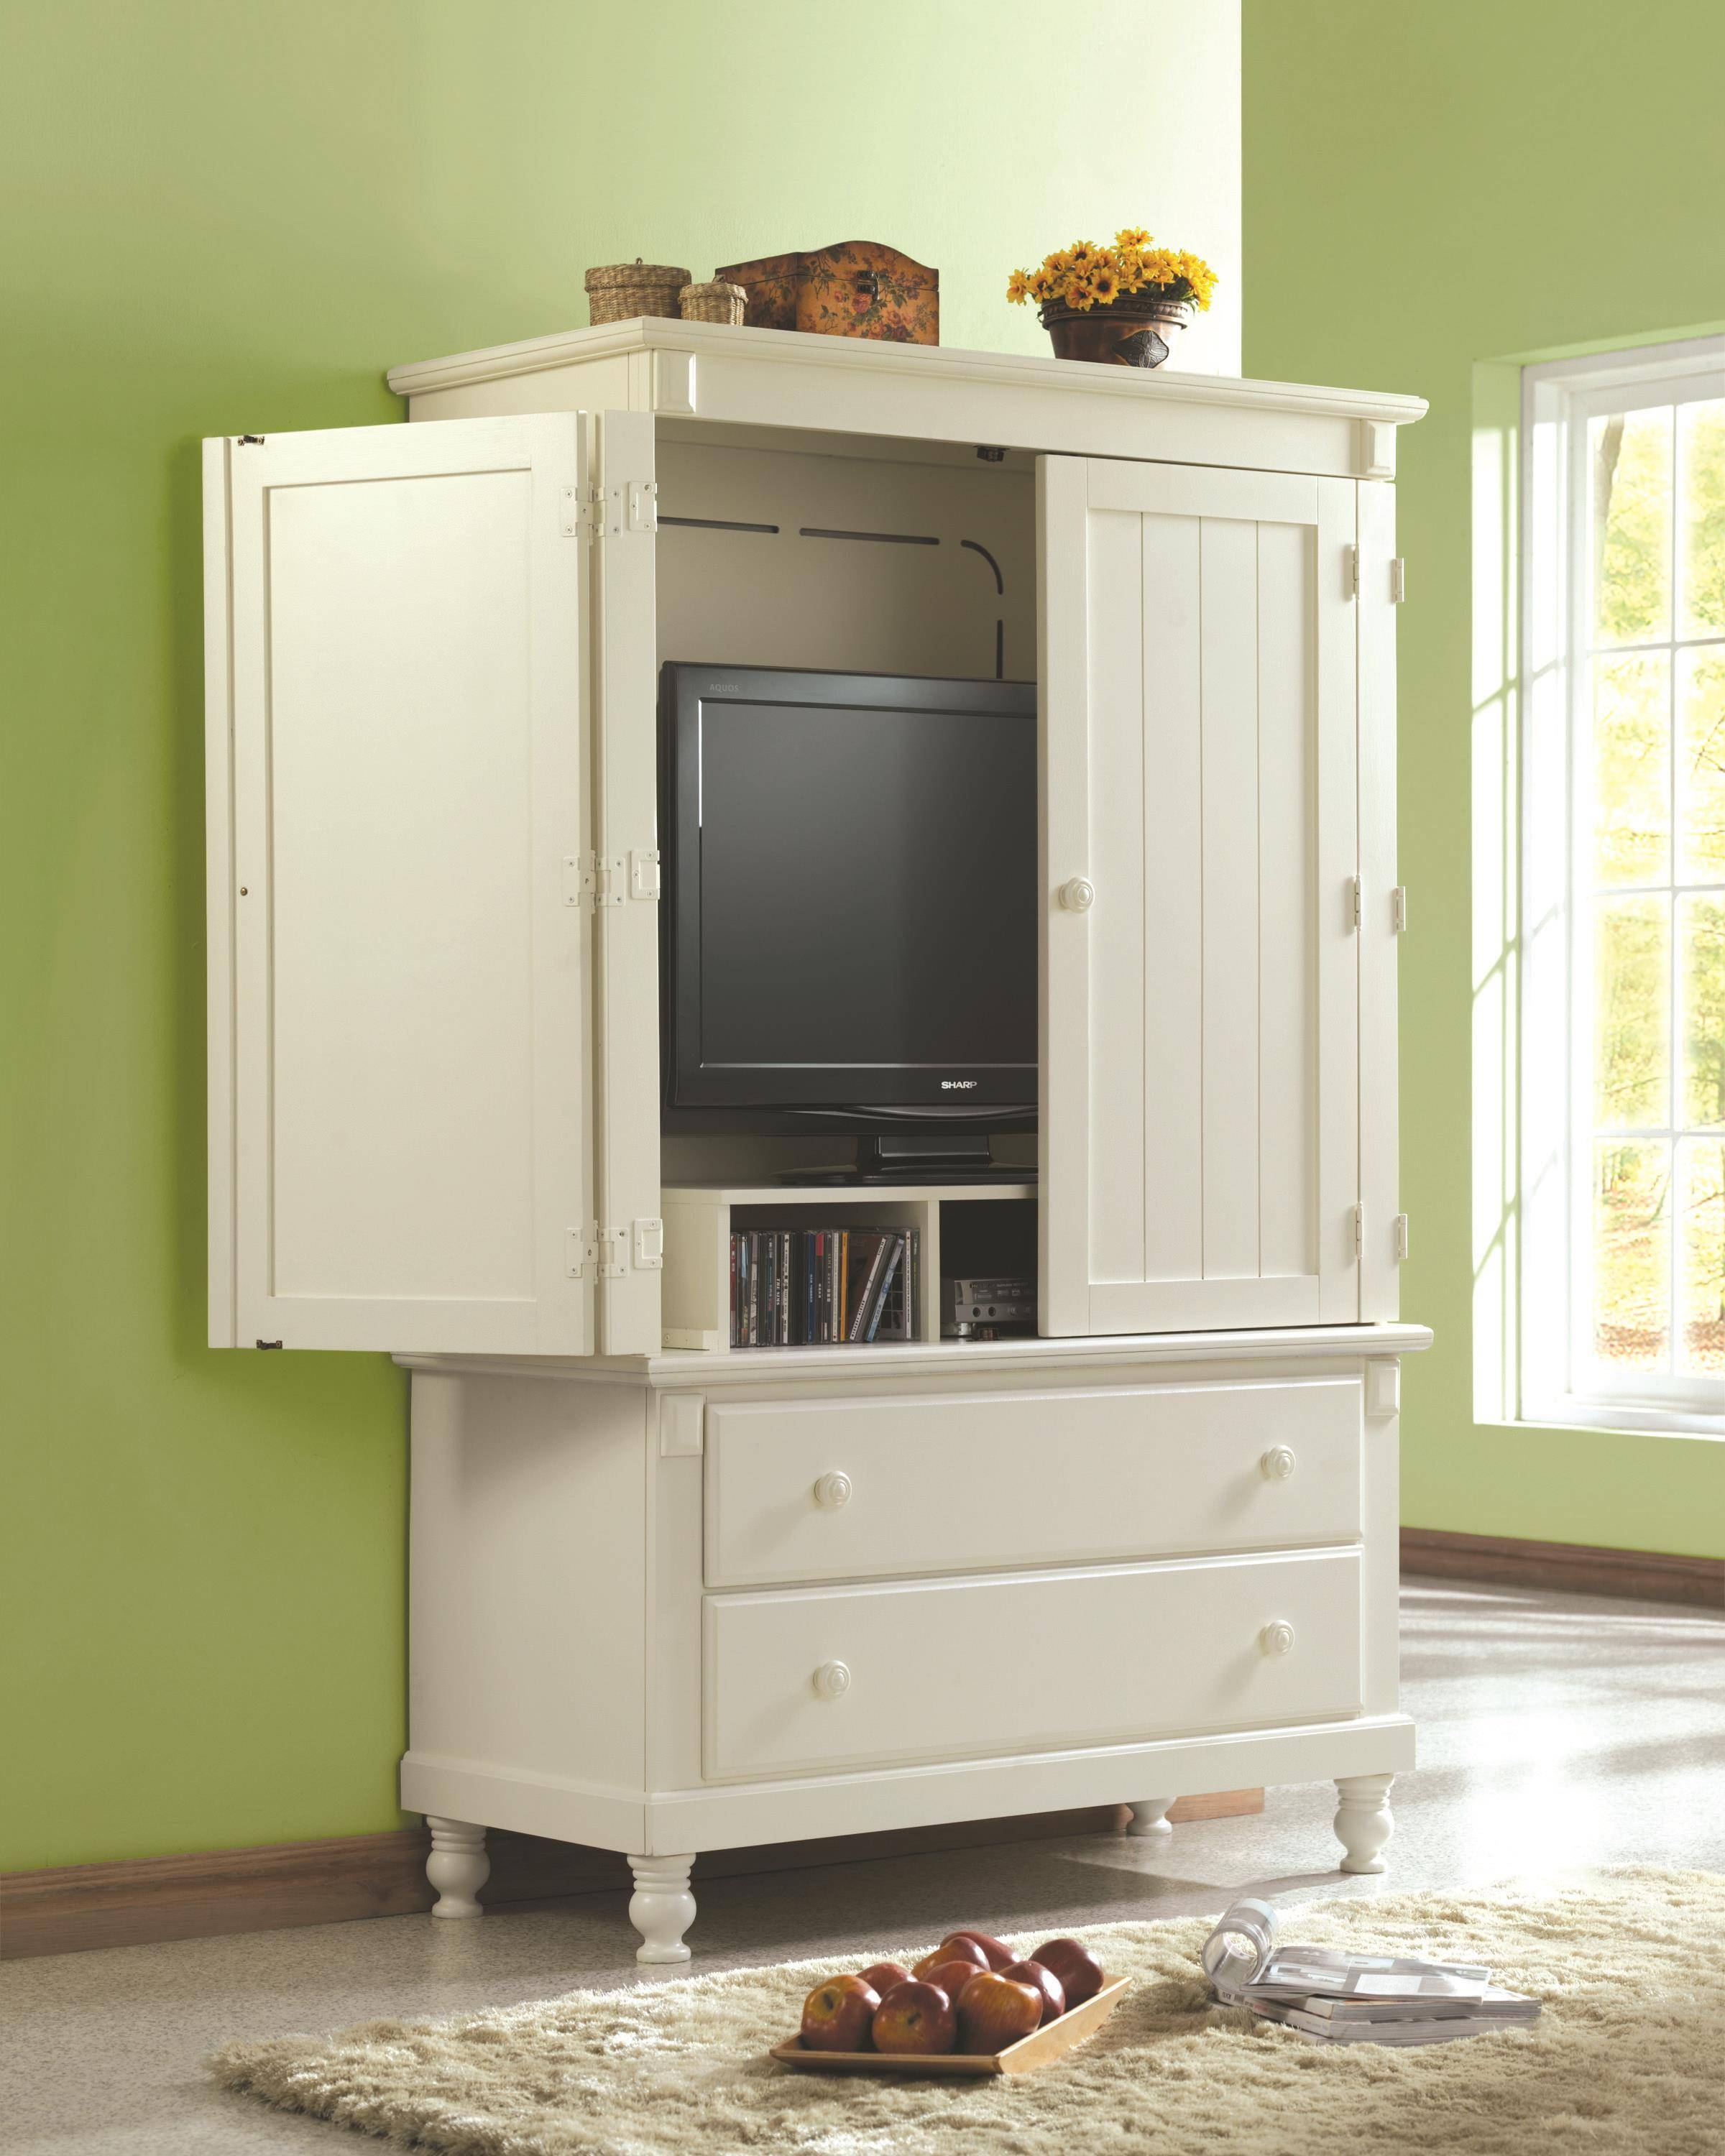 Remarkable Corner Tv Cabinet With Doors 50 About Remodel With Regard To Corner Tv Cabinets For Flat Screens With Doors (View 13 of 15)